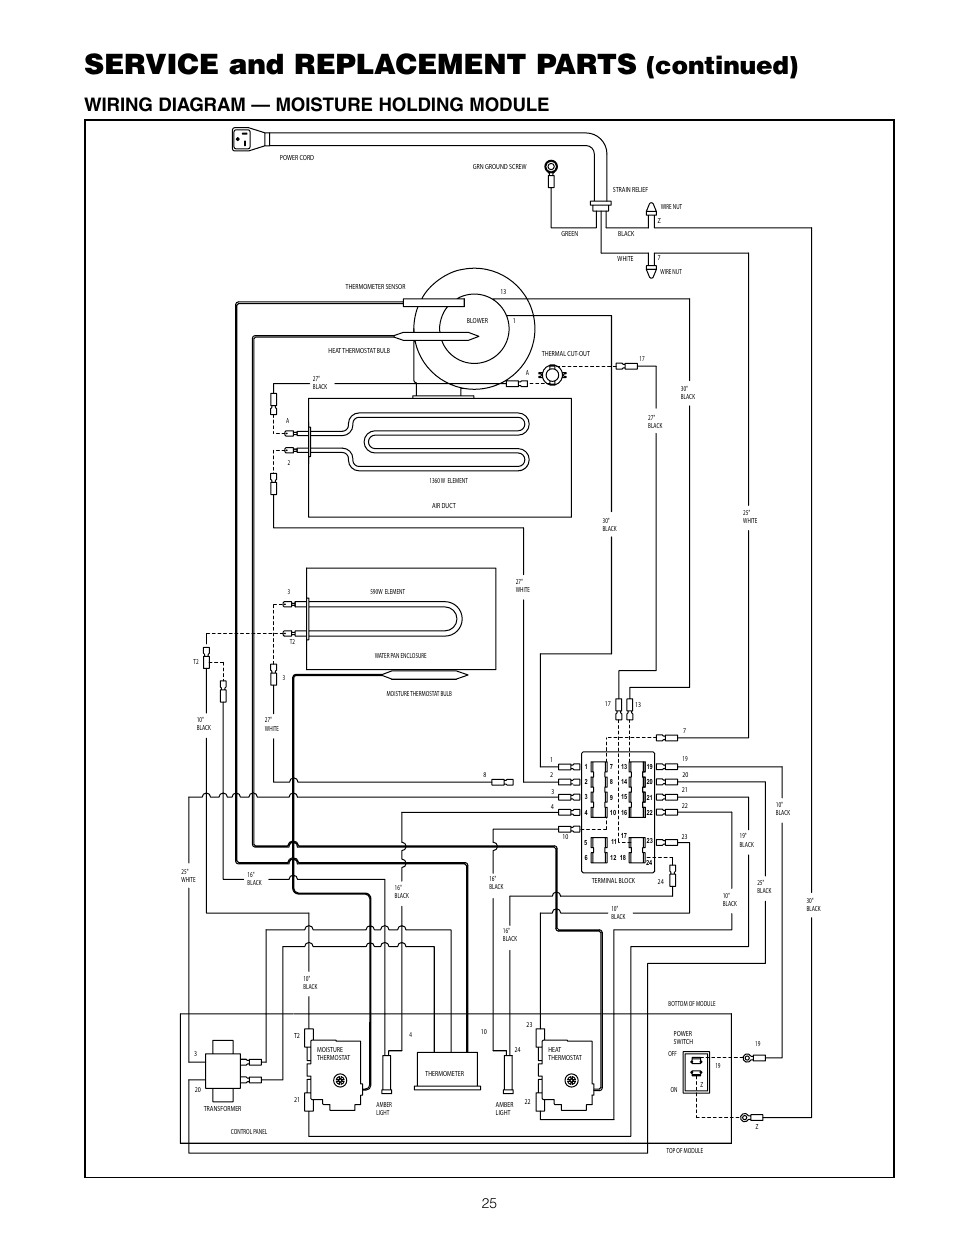 medium resolution of service and replacement parts continued wiring diagram moisture metro c5 wiring diagram for